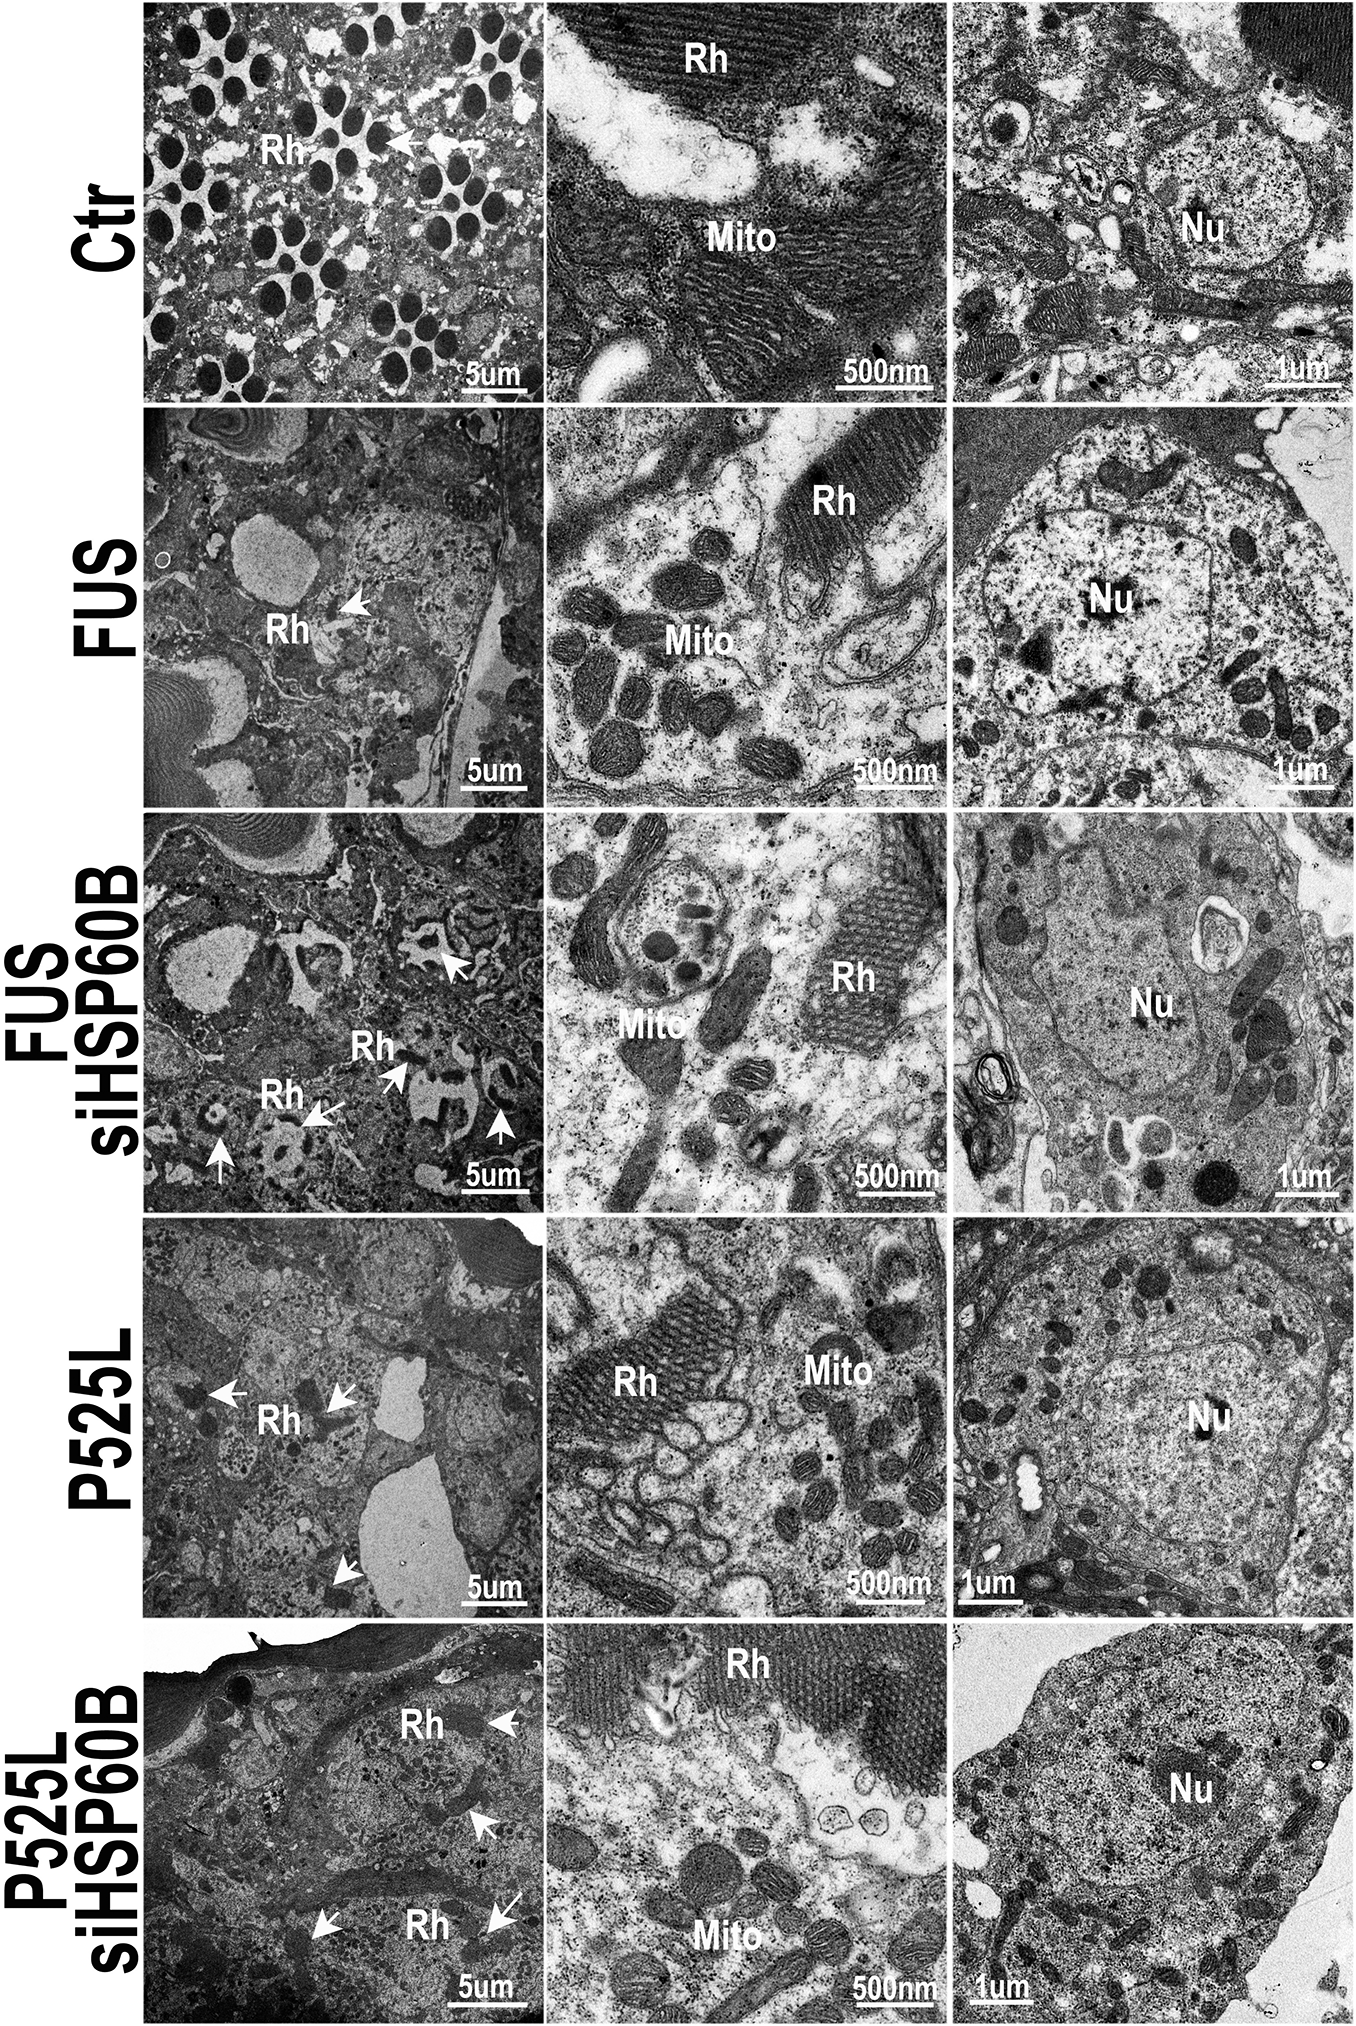 Down-regulating HSP60B in fly photoreceptors partially rescues the retinal degeneration phenotype of FUS transgenic mice as shown by transmission electron microscopy (TEM).